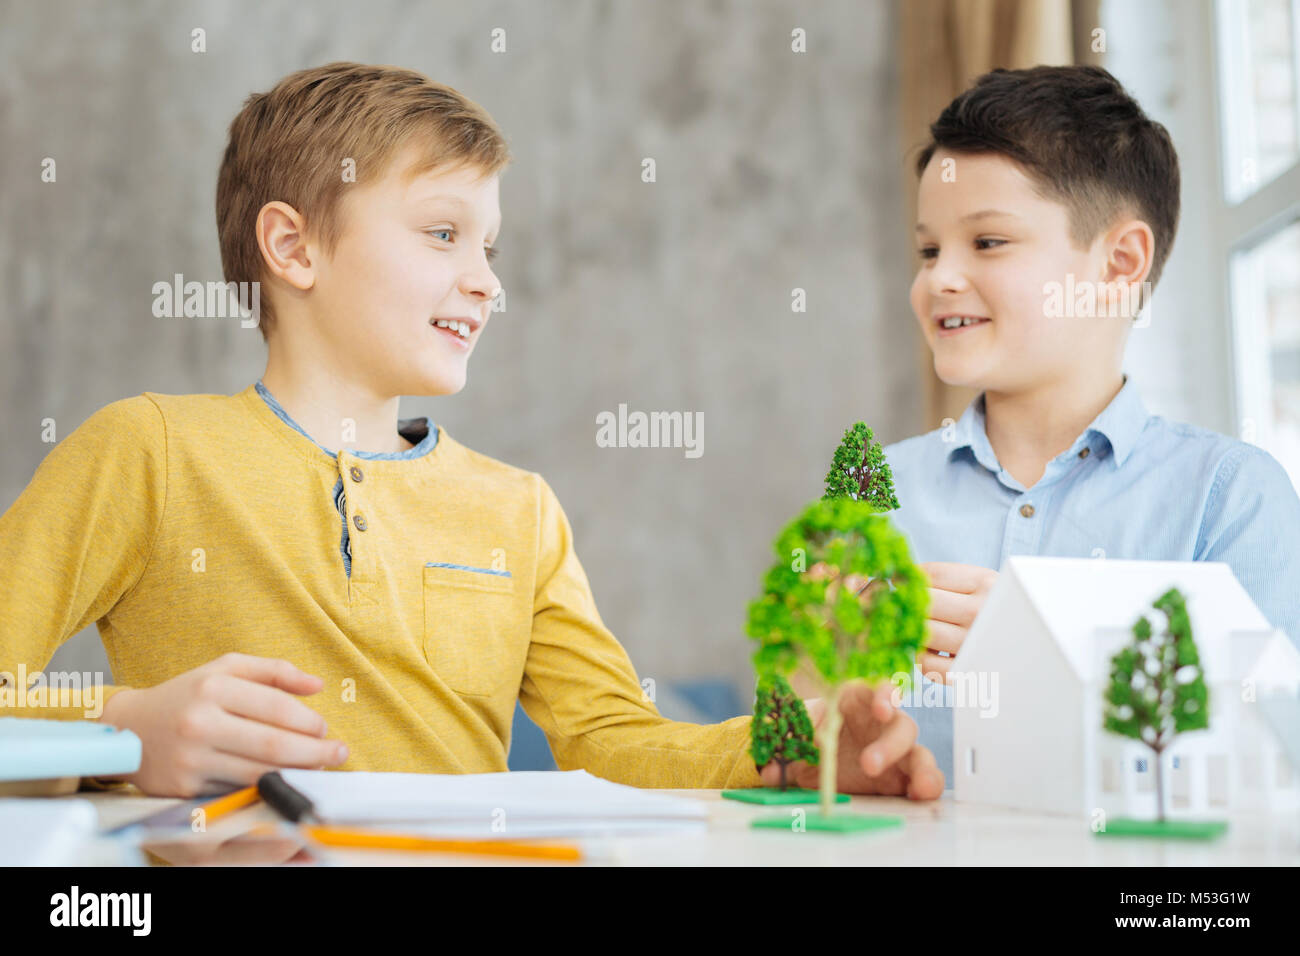 Cheerful pre-teen boys discussing their ecology project - Stock Image